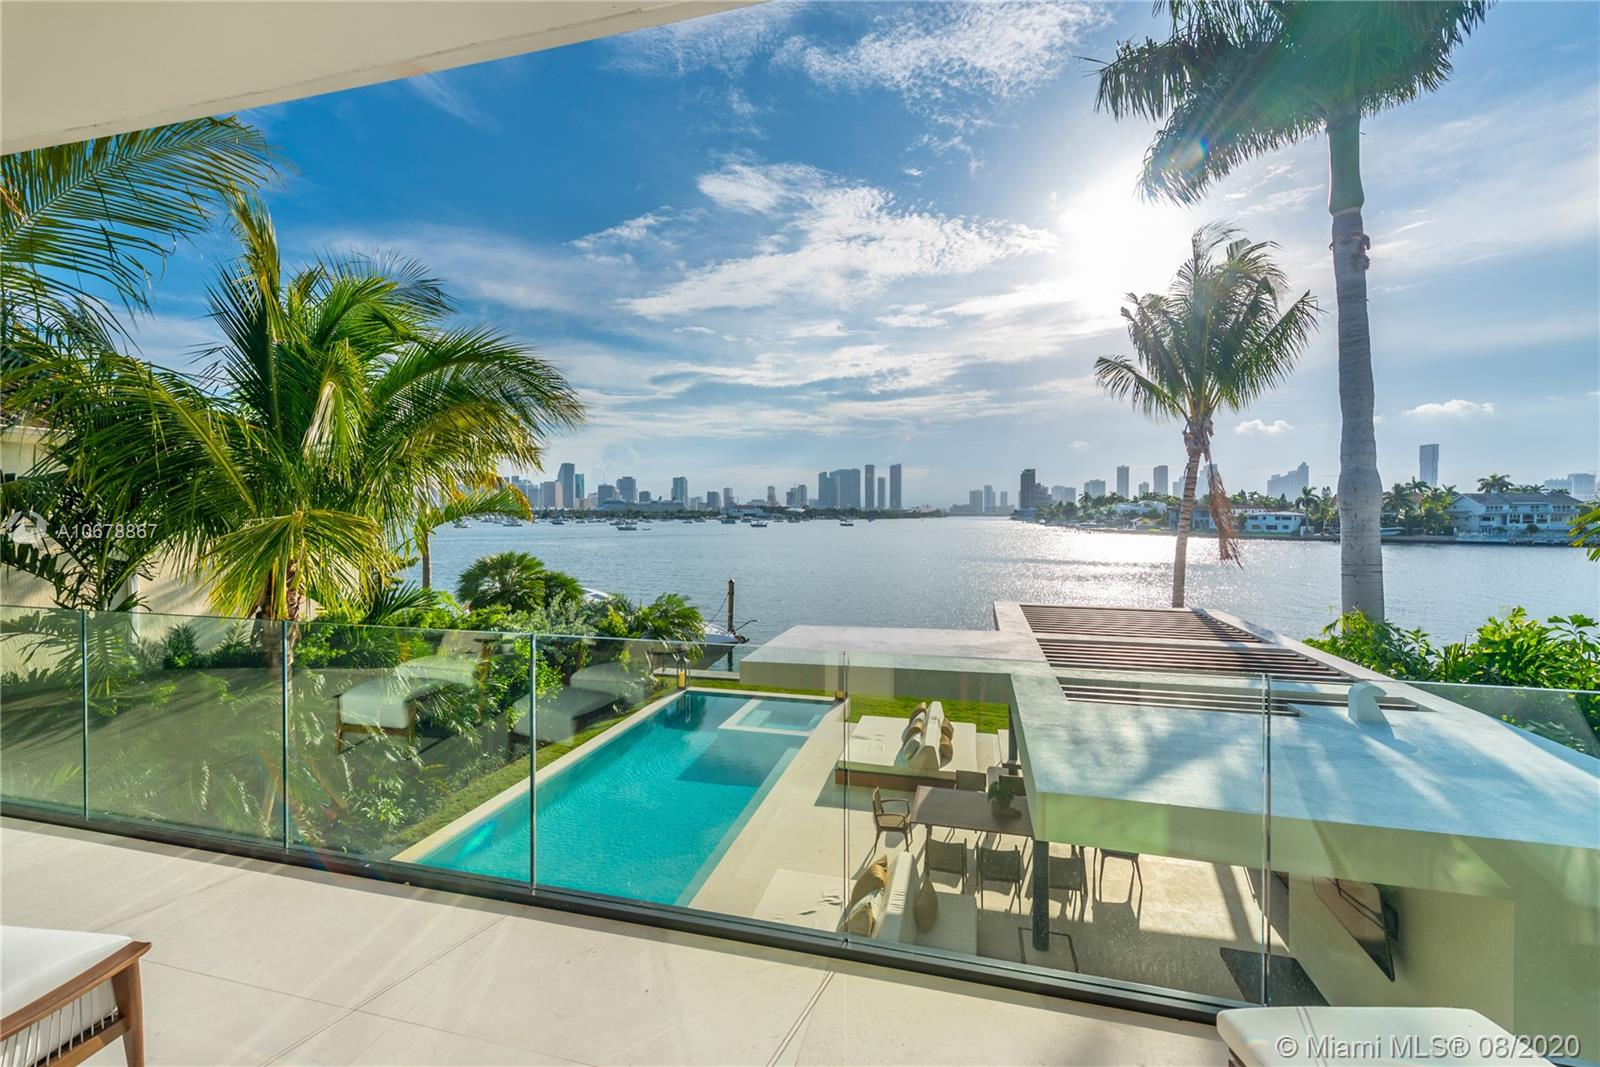 New Construction. Gorgeous 2-story contemporary waterfront home located on the Venetian Islands with incredible views of the Miami downtown skyline, open bay & the most dramatic sunsets in Miami affords an enviable luxury lifestyle in a prestigious, sought-after locale.